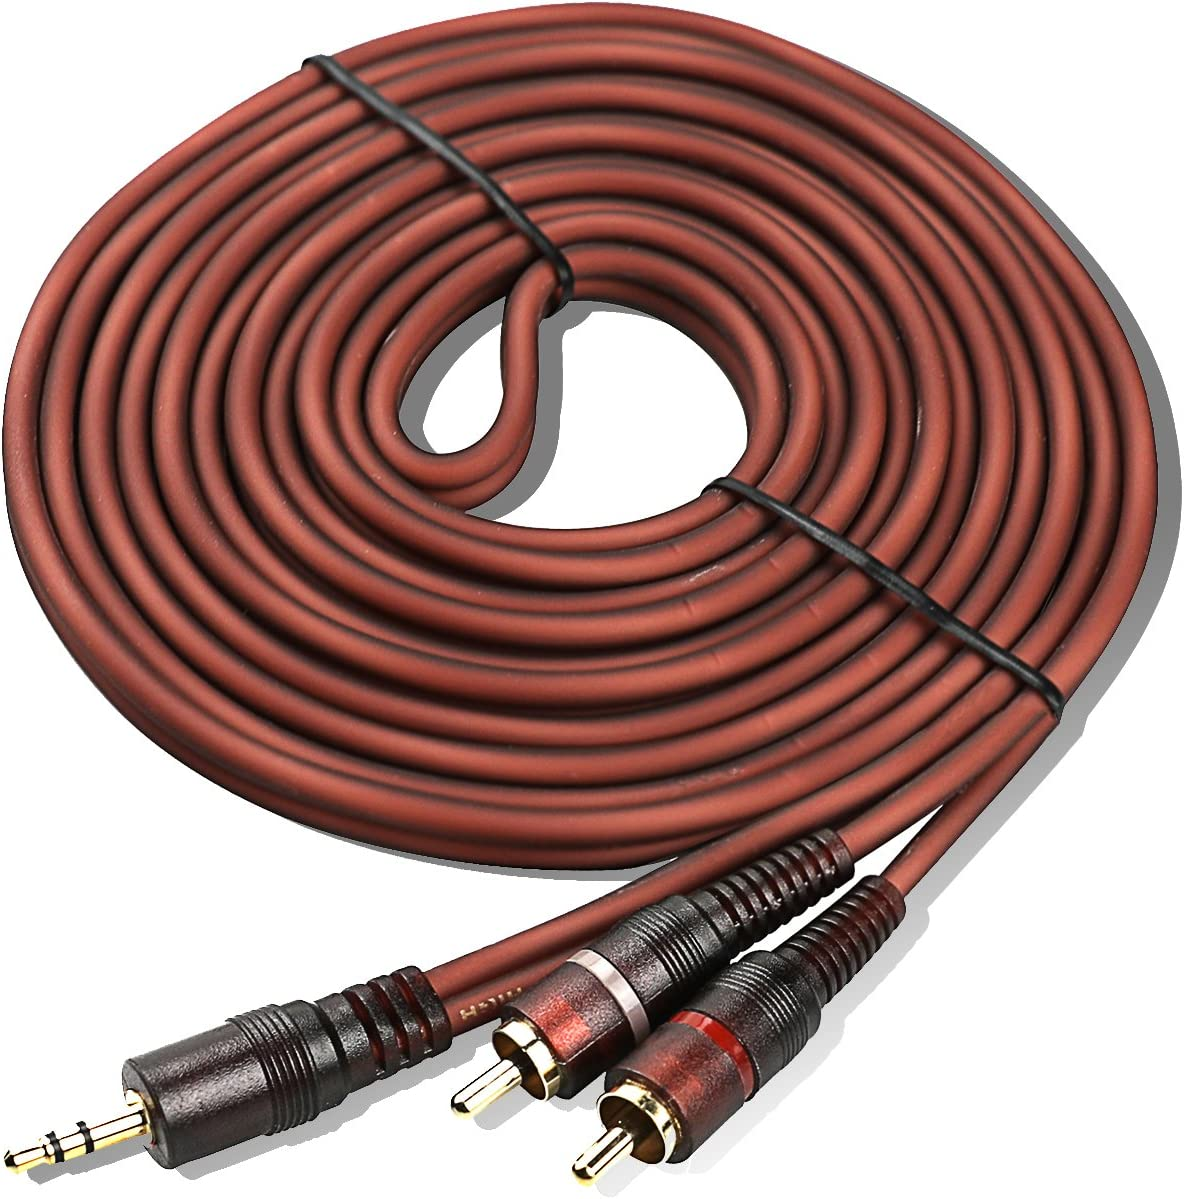 Gold 16.5 feet 15FT 3.5mm Stereo AUX Male to Two RCA Male Y Splitter Cable